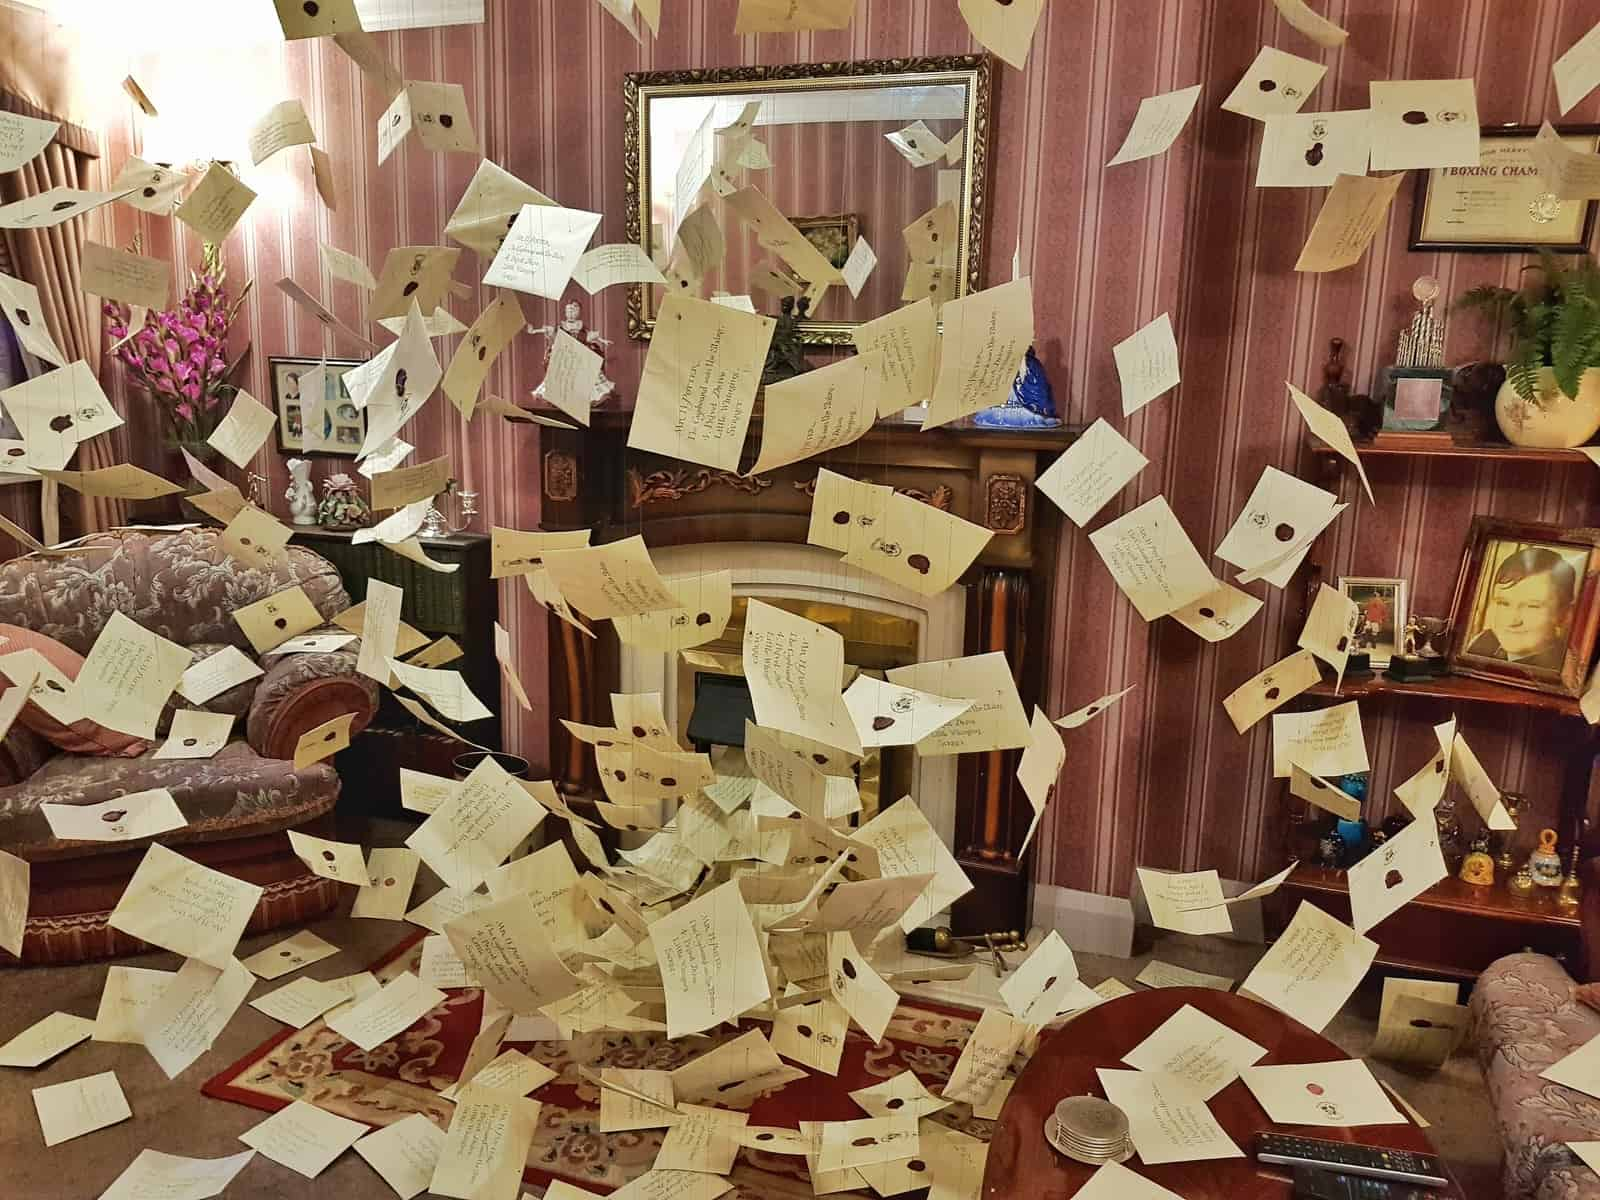 The inside of the living room at 1 Privet drive with letters swirling around in the air